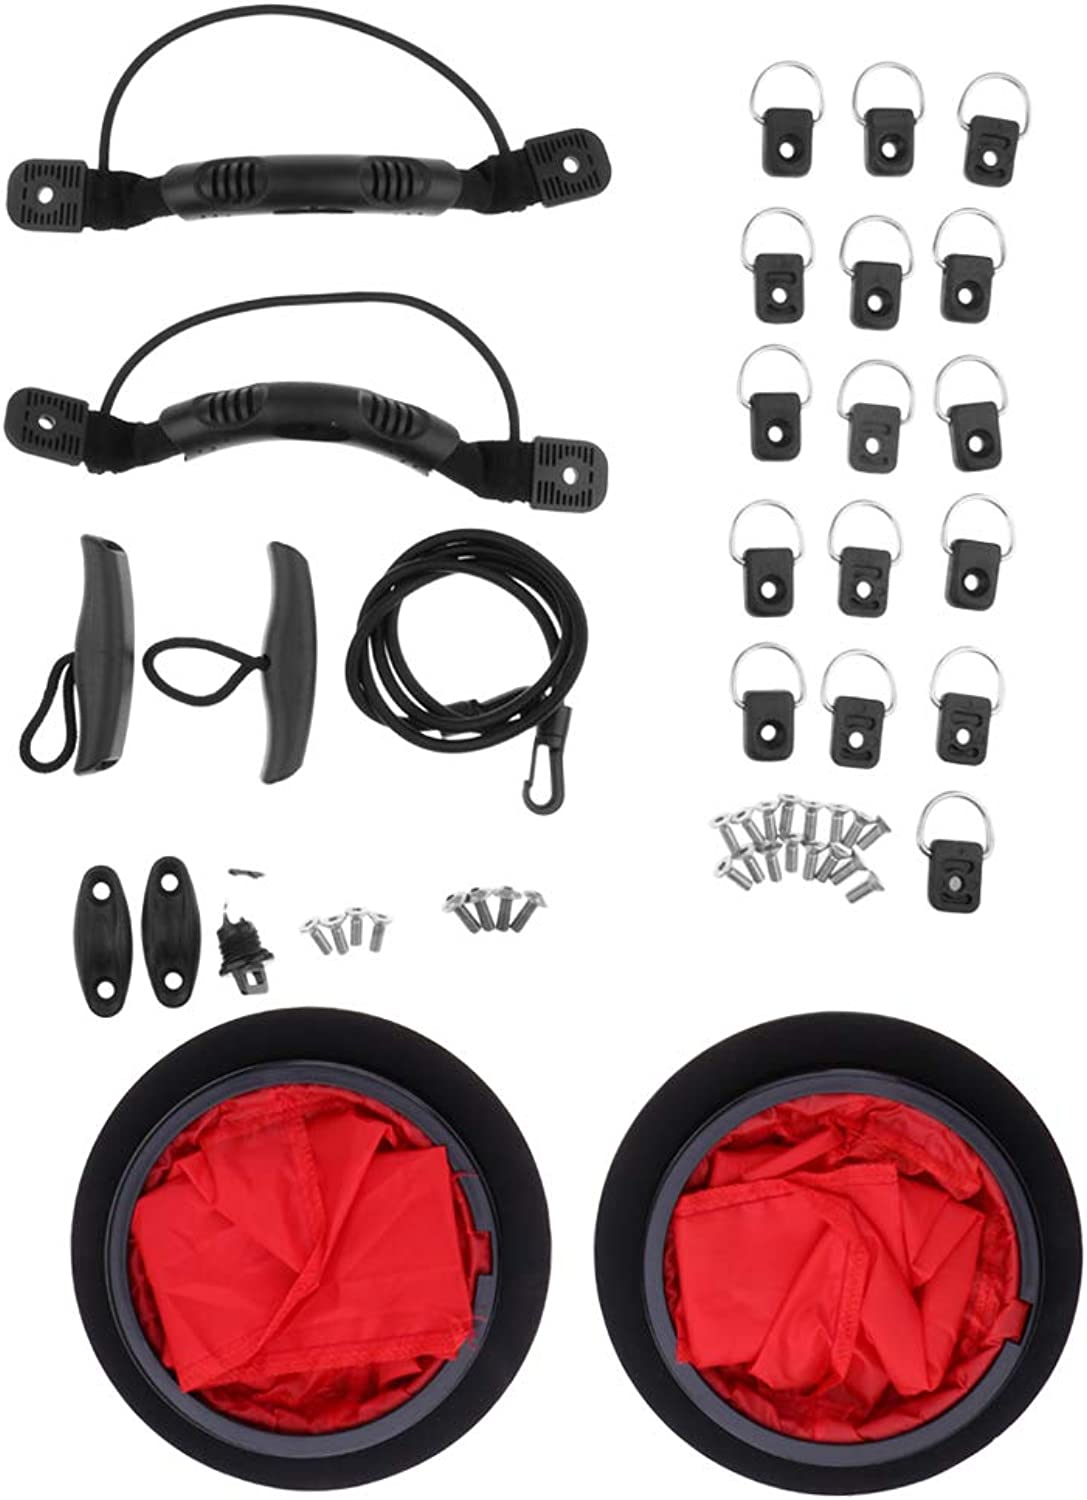 Baosity 2pcs Kayak Deck Plate & 1pcs Canoe Drain Plug & 16pcs D Rings & 1 Pair Toggle Carry Handles Boat Kit Set with Hardware